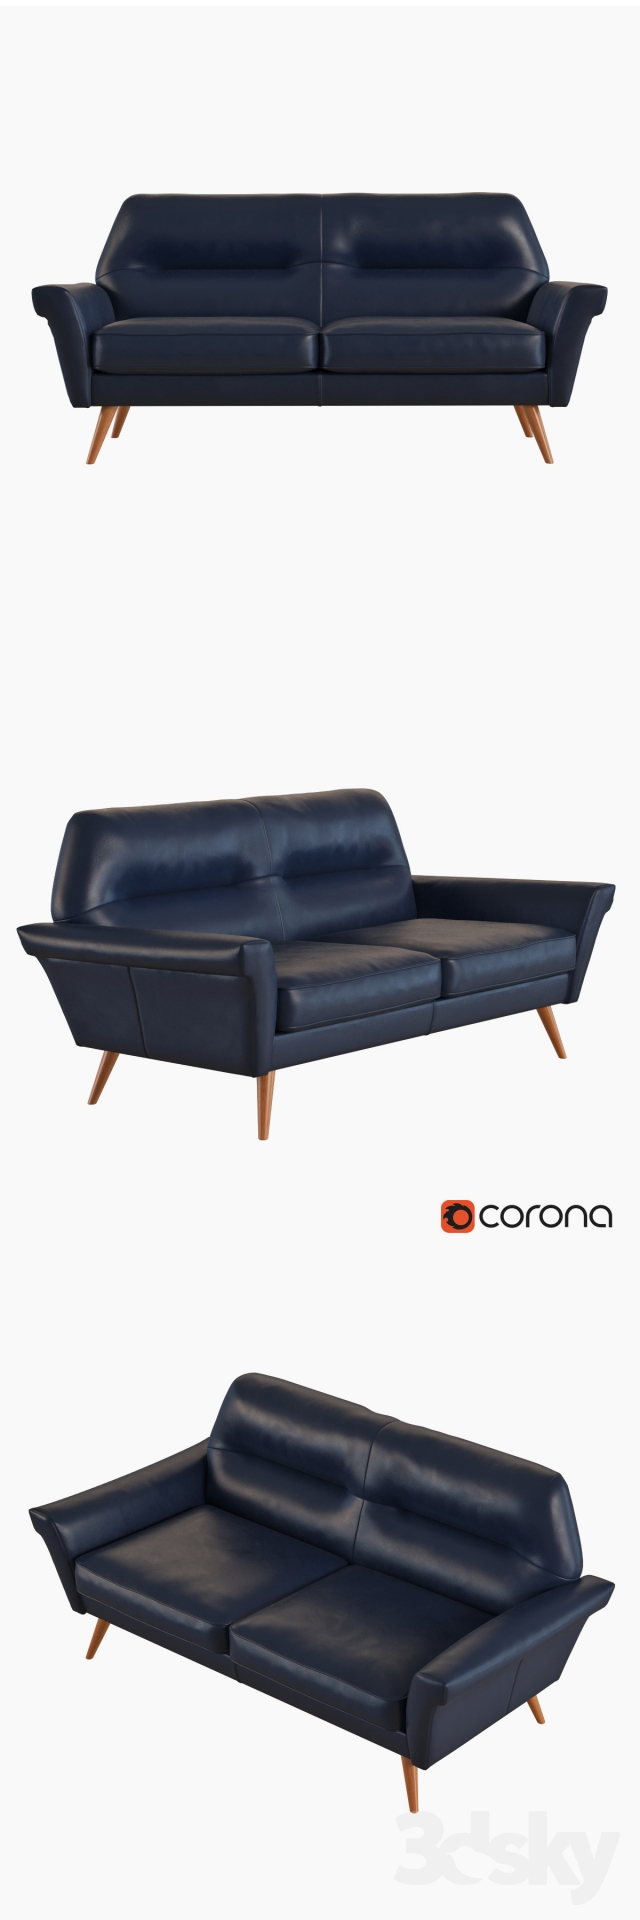 Amazing 3D Models Sofa West Elm Denmark Leather Loveseat Unemploymentrelief Wooden Chair Designs For Living Room Unemploymentrelieforg